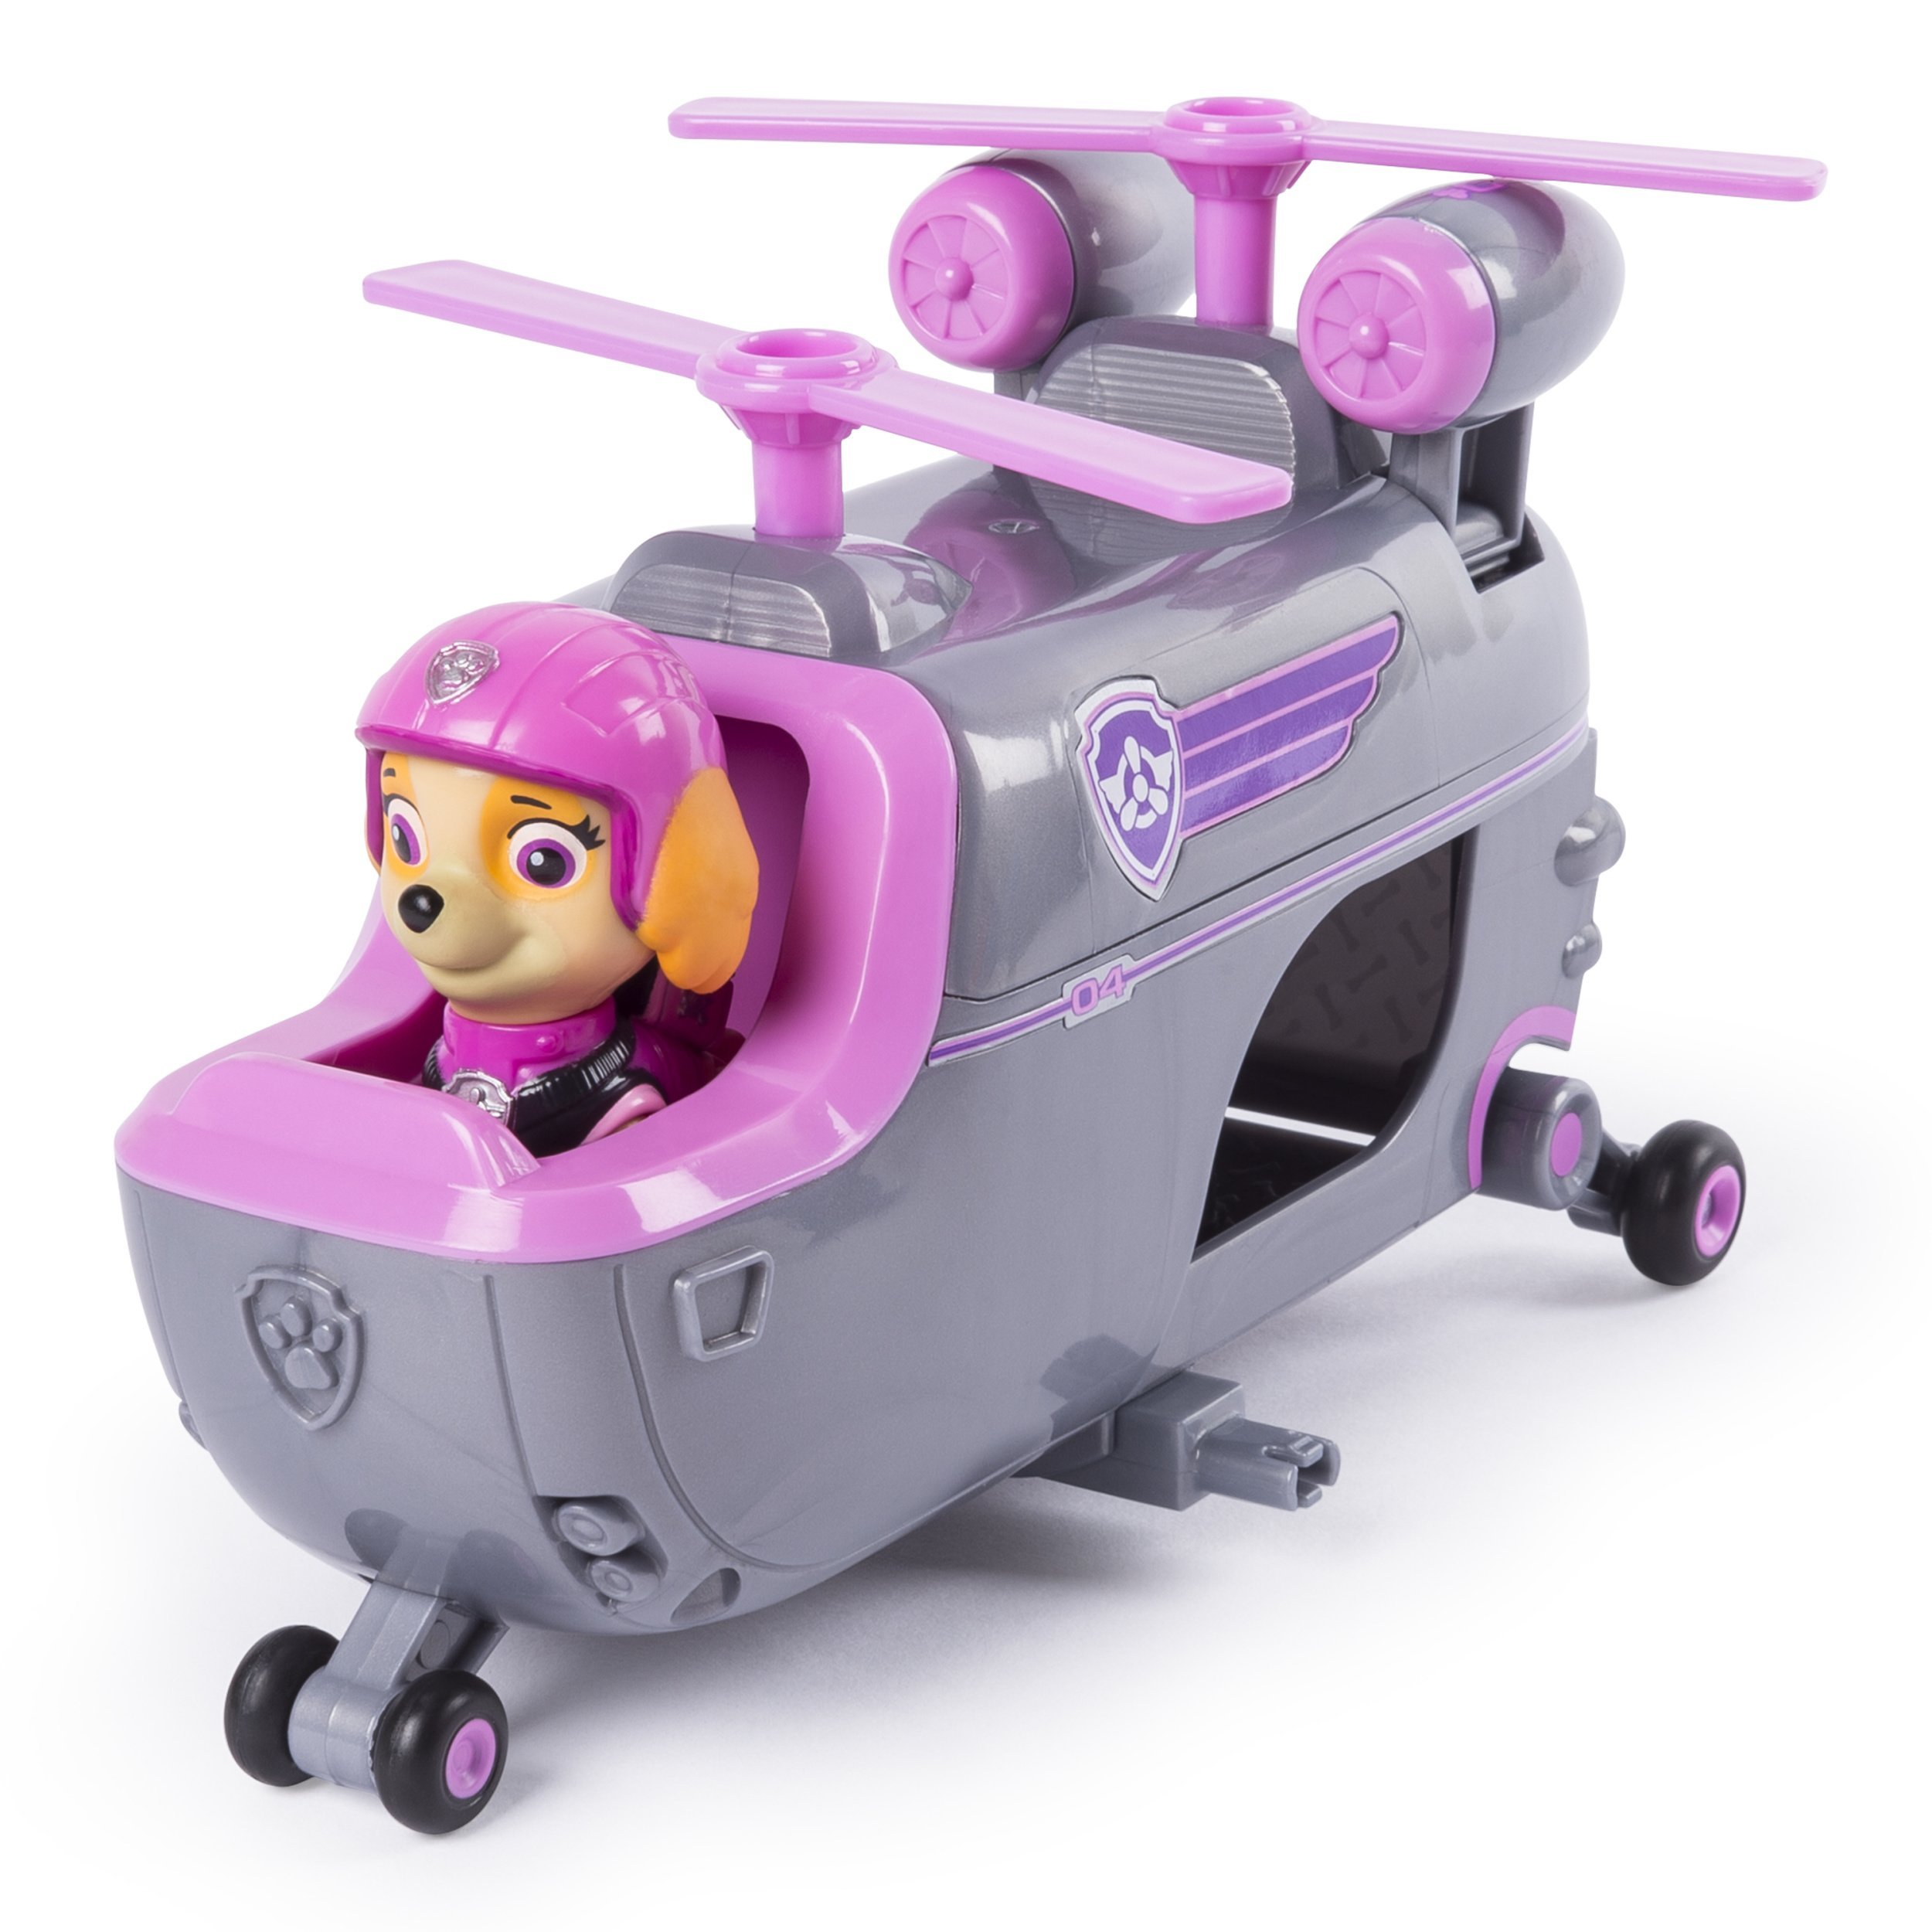 Paw Patrol Skye's Ultimate Rescue Helicopter Moving Propellers Hook by Paw Patrol (Image #4)